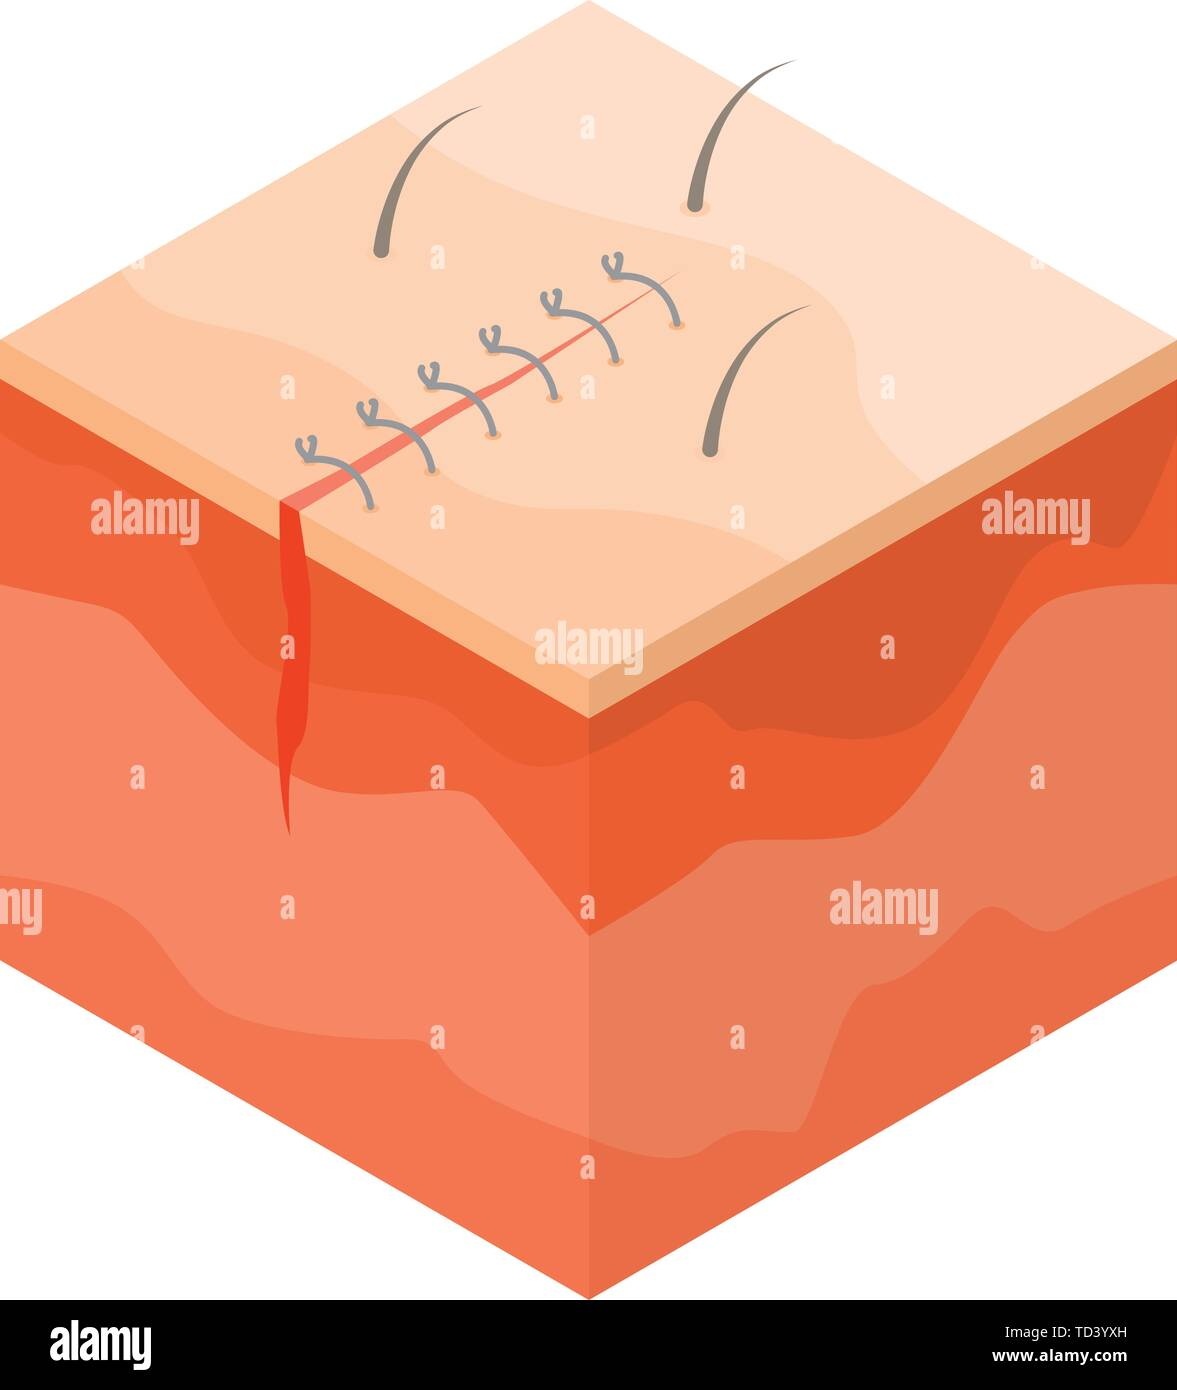 Medical surgical suture icon, isometric style - Stock Image